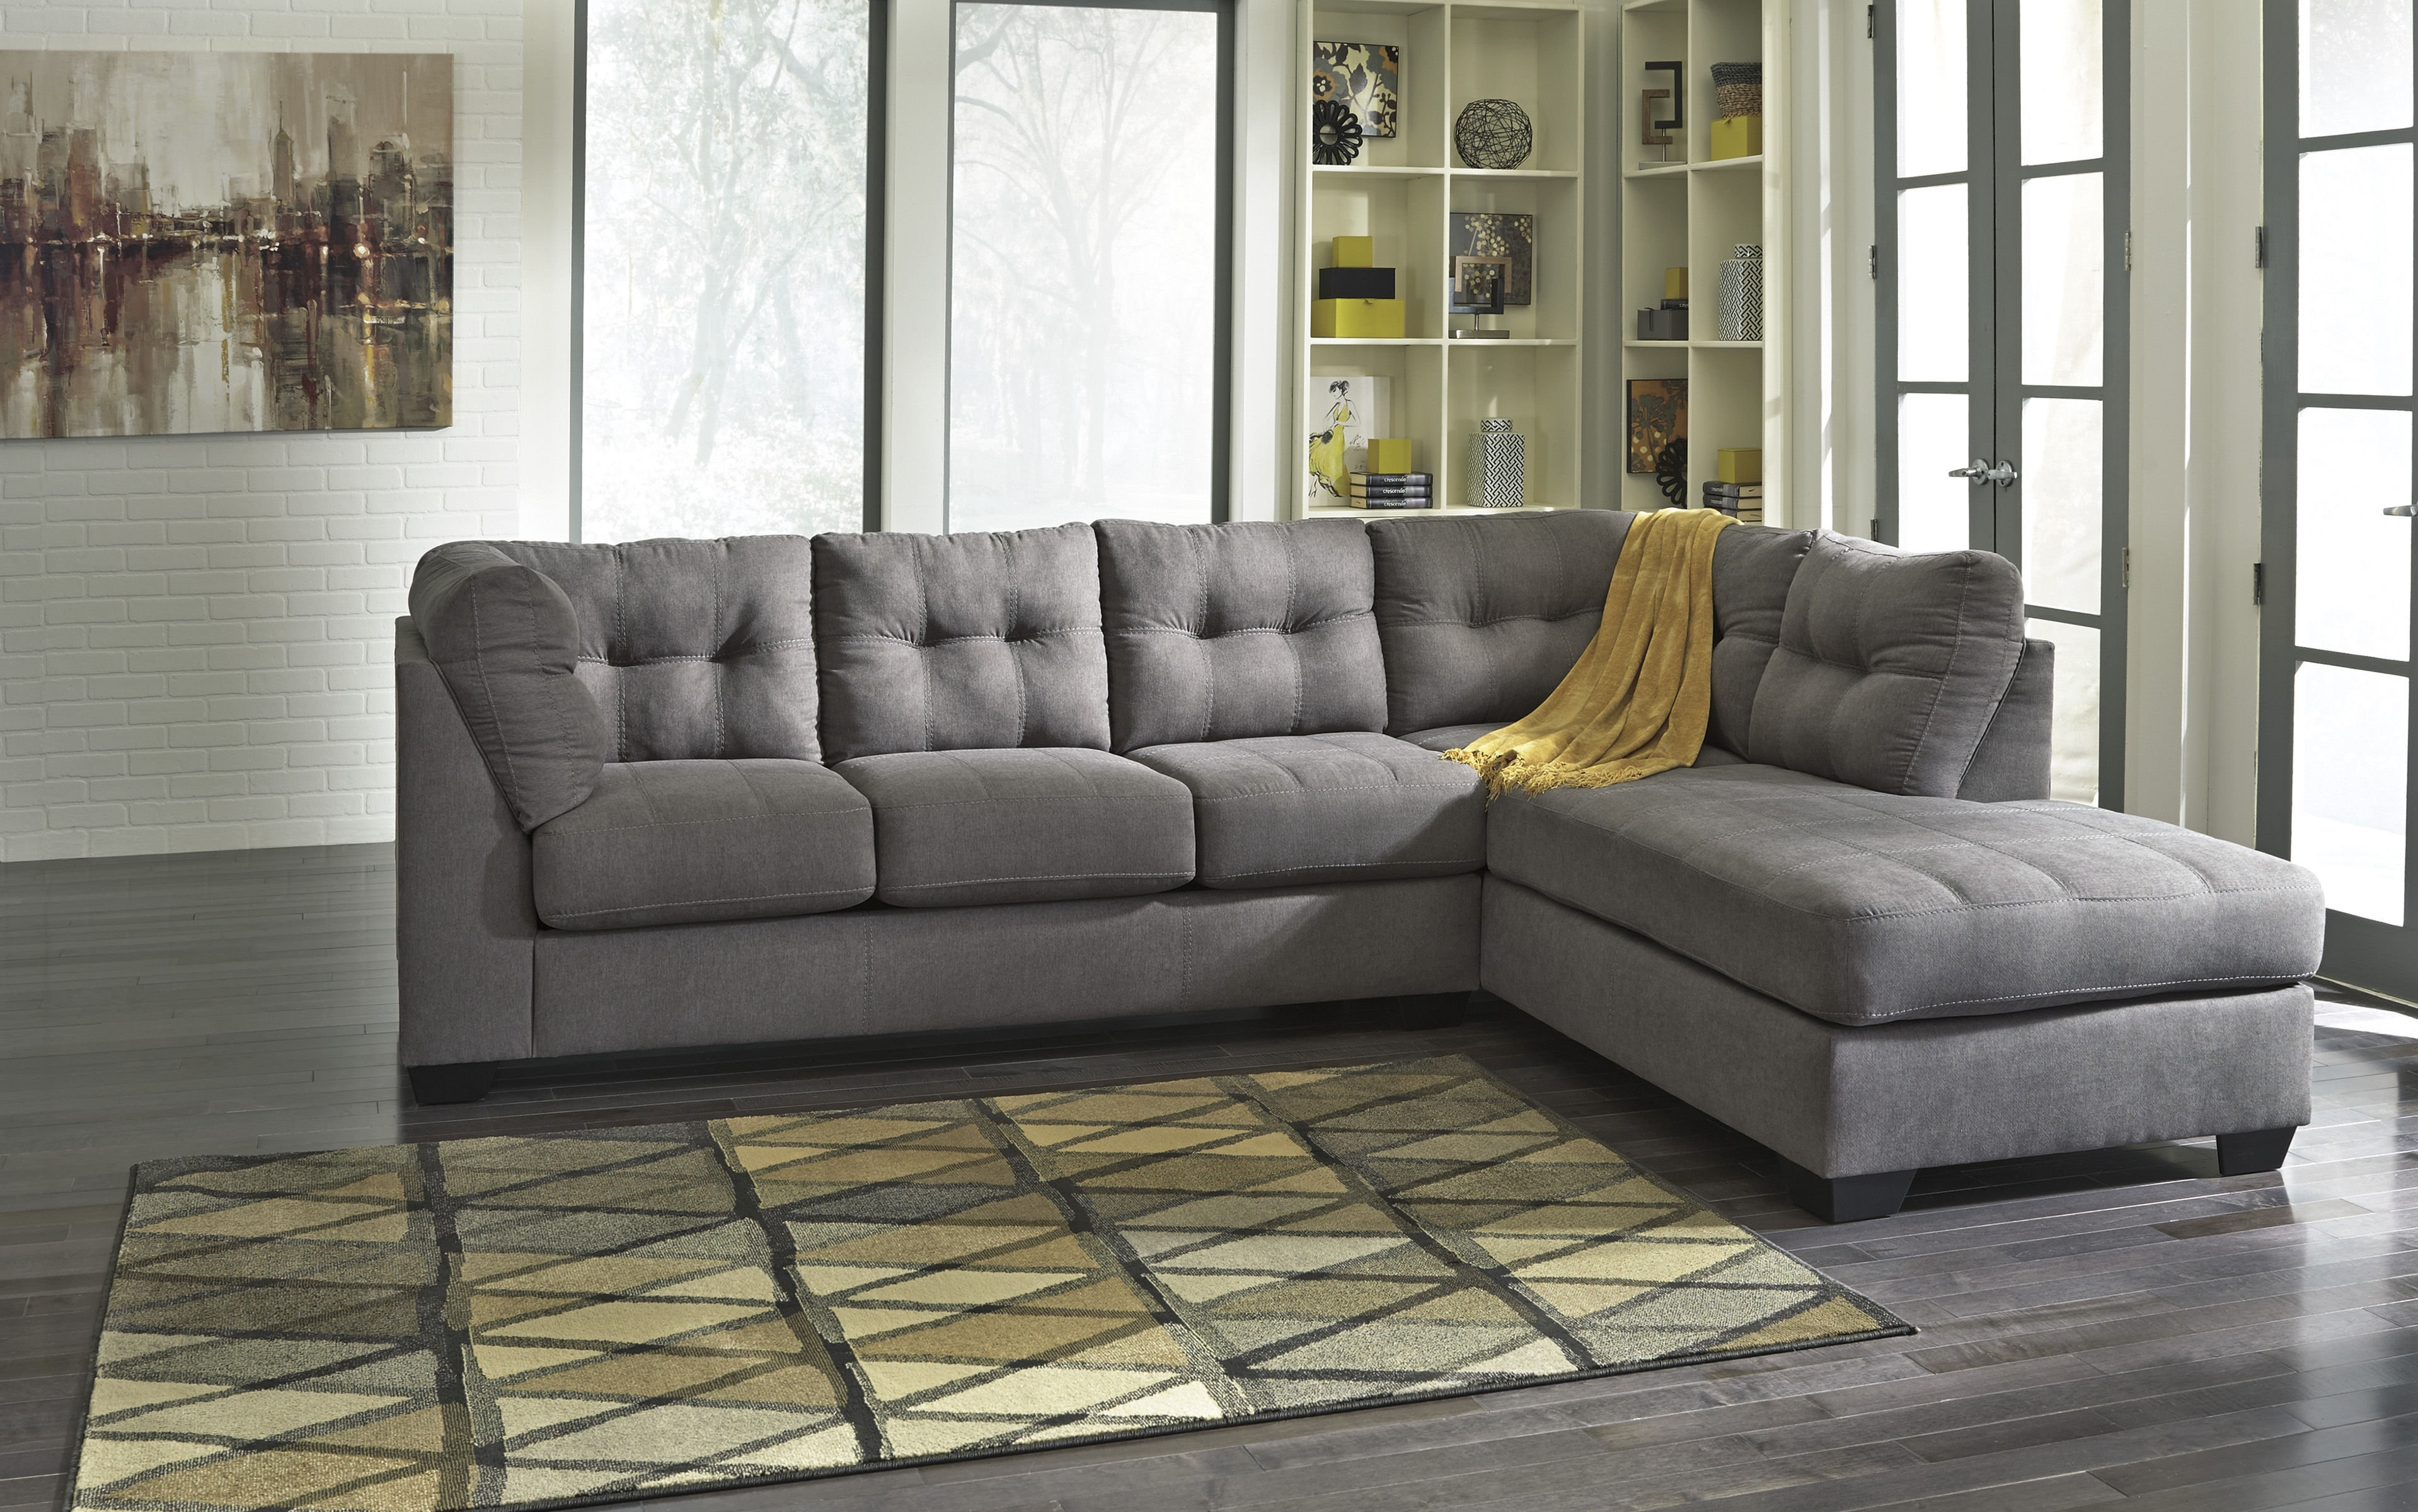 Ashley Furniture Maier Charcoal Raf Chaise Sectional | The Classy Home throughout Collins Sofa Sectionals With Reversible Chaise (Image 2 of 30)